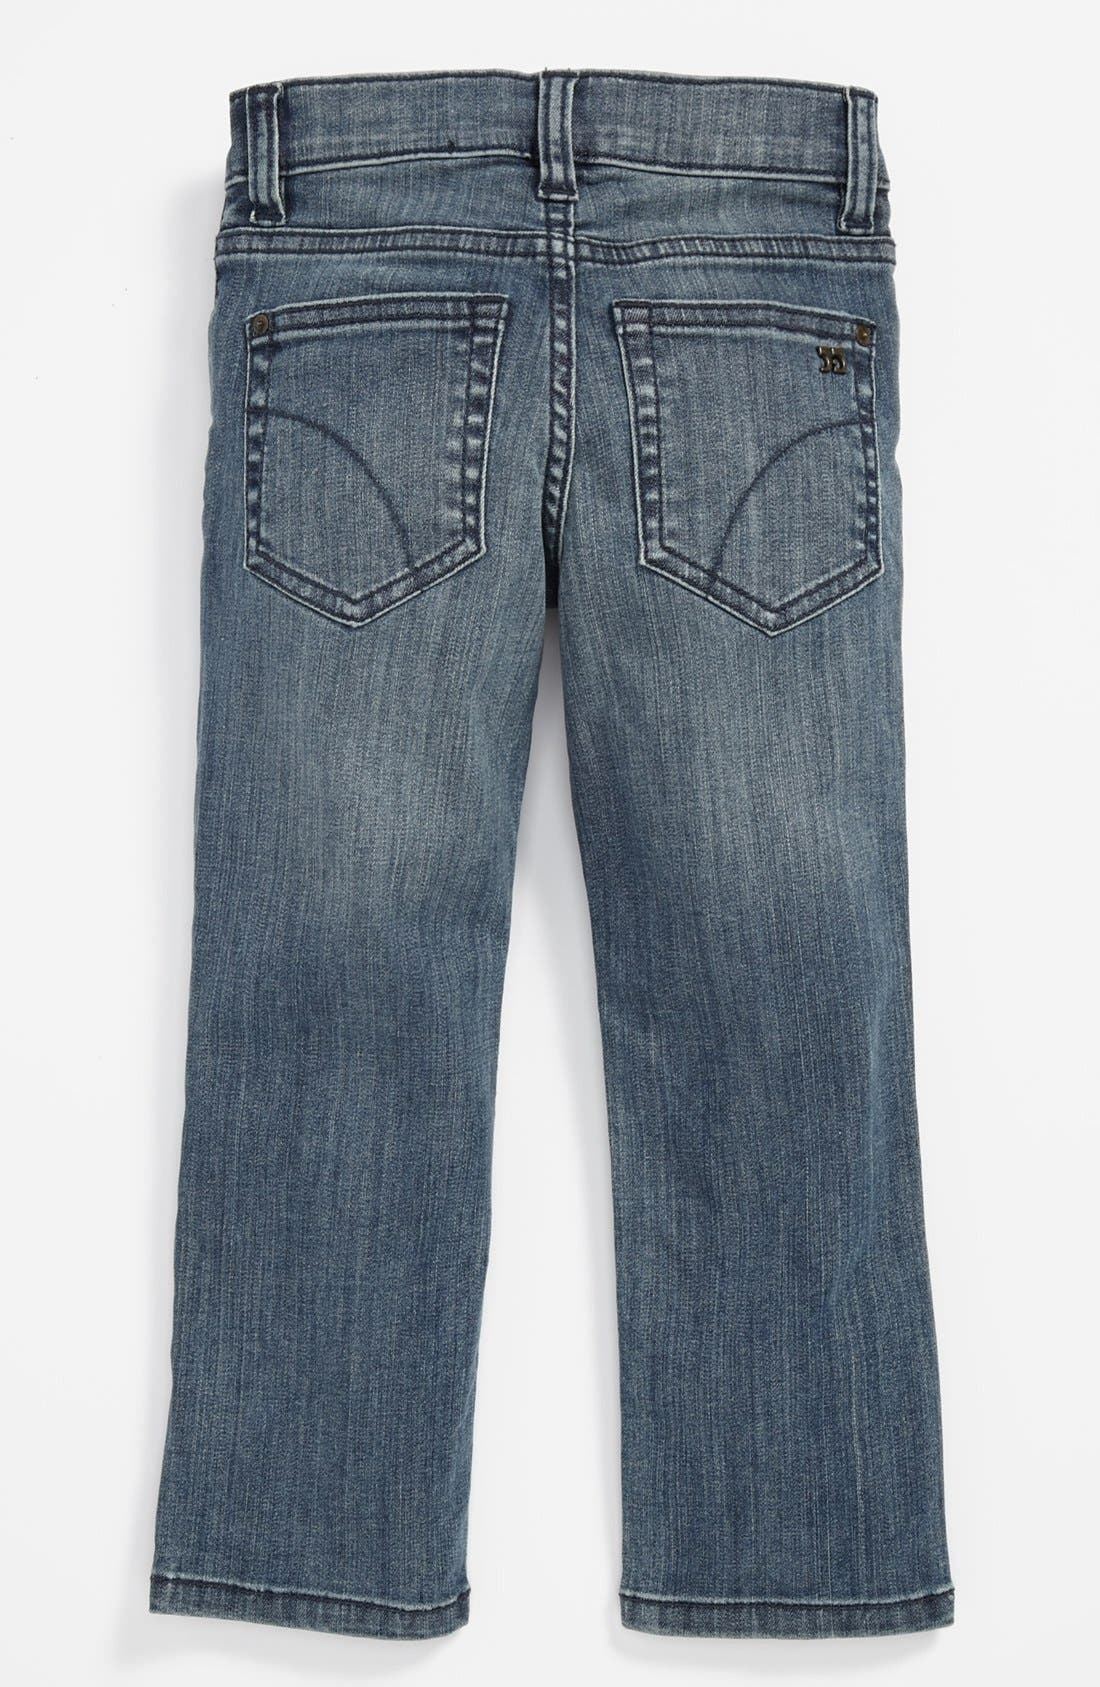 Alternate Image 1 Selected - Joe's 'Brixton' Straight Leg Jeans (Toddler Boys)